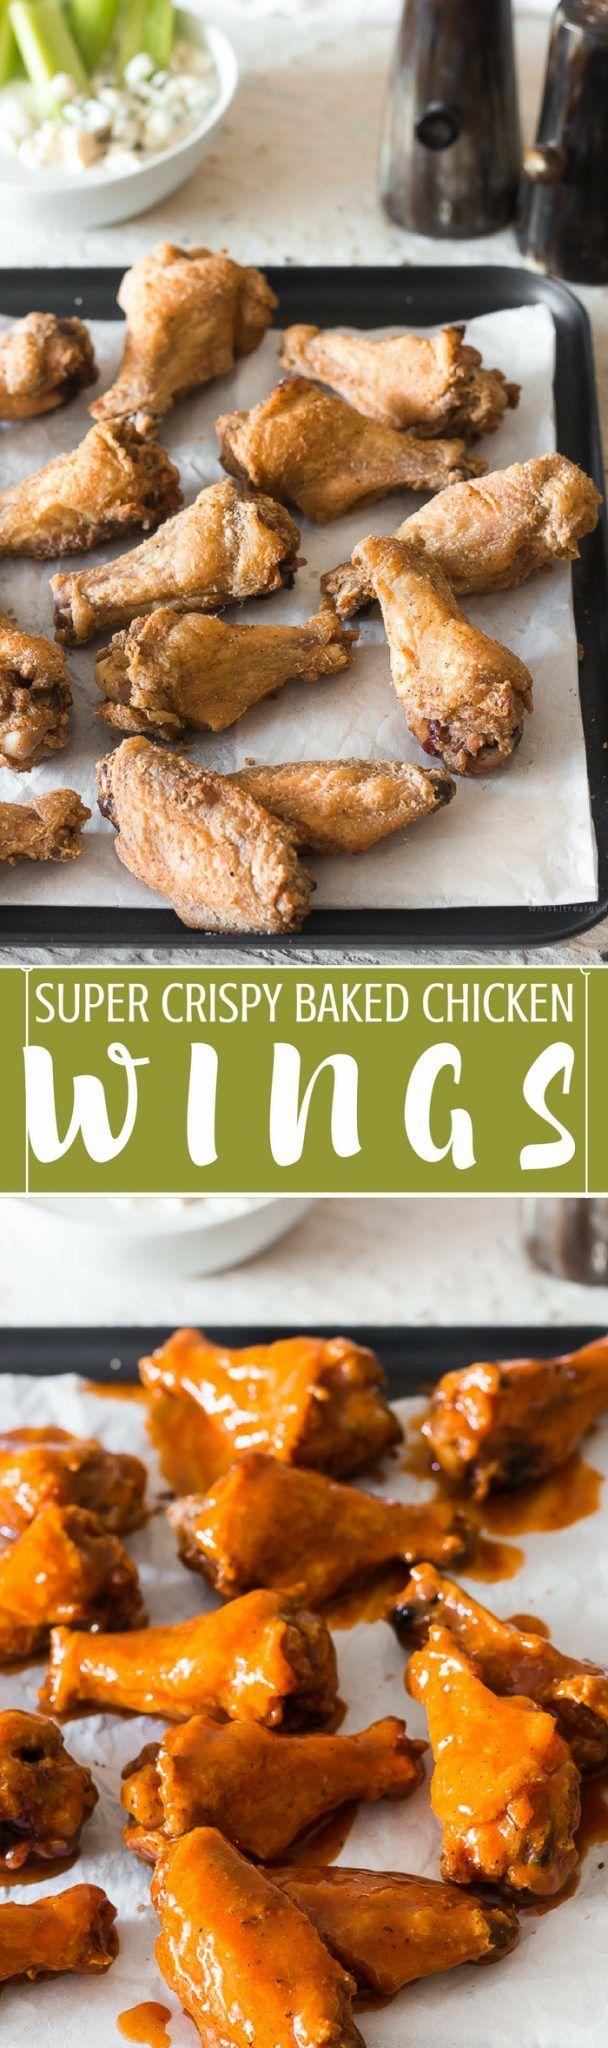 Extra crispy chicken wings that are baked & not fried and ready to be dipped in homemade blue cheese sauce.